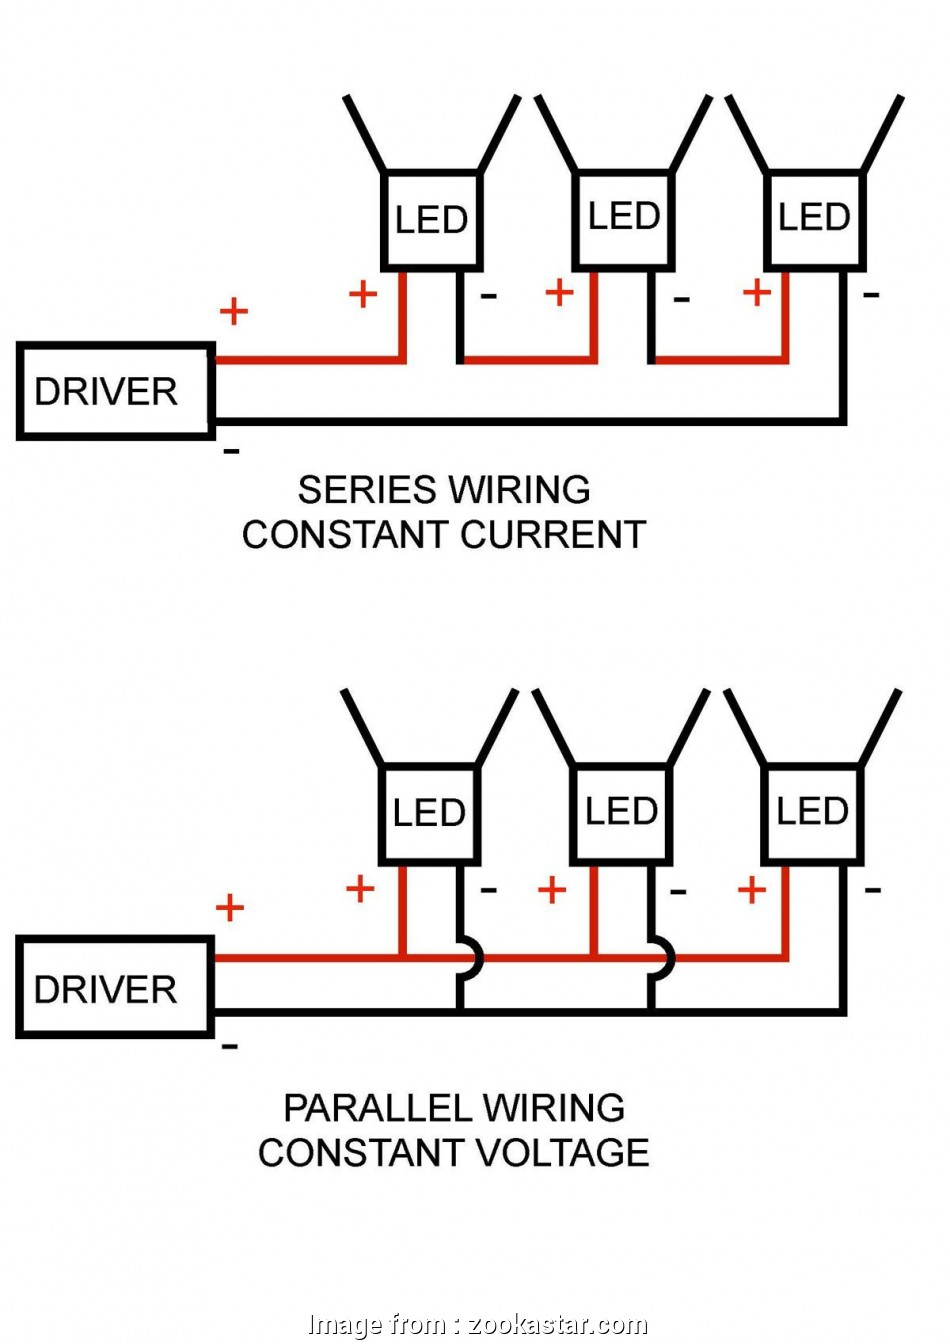 how to wire recessed lighting in parallel Parallel Wiring Diagram, Recessed Lights Simplified Shapes 2017 Wiring Diagram, Recessed Lights In Parallel Joescablecar How To Wire Recessed Lighting In Parallel Popular Parallel Wiring Diagram, Recessed Lights Simplified Shapes 2017 Wiring Diagram, Recessed Lights In Parallel Joescablecar Pictures